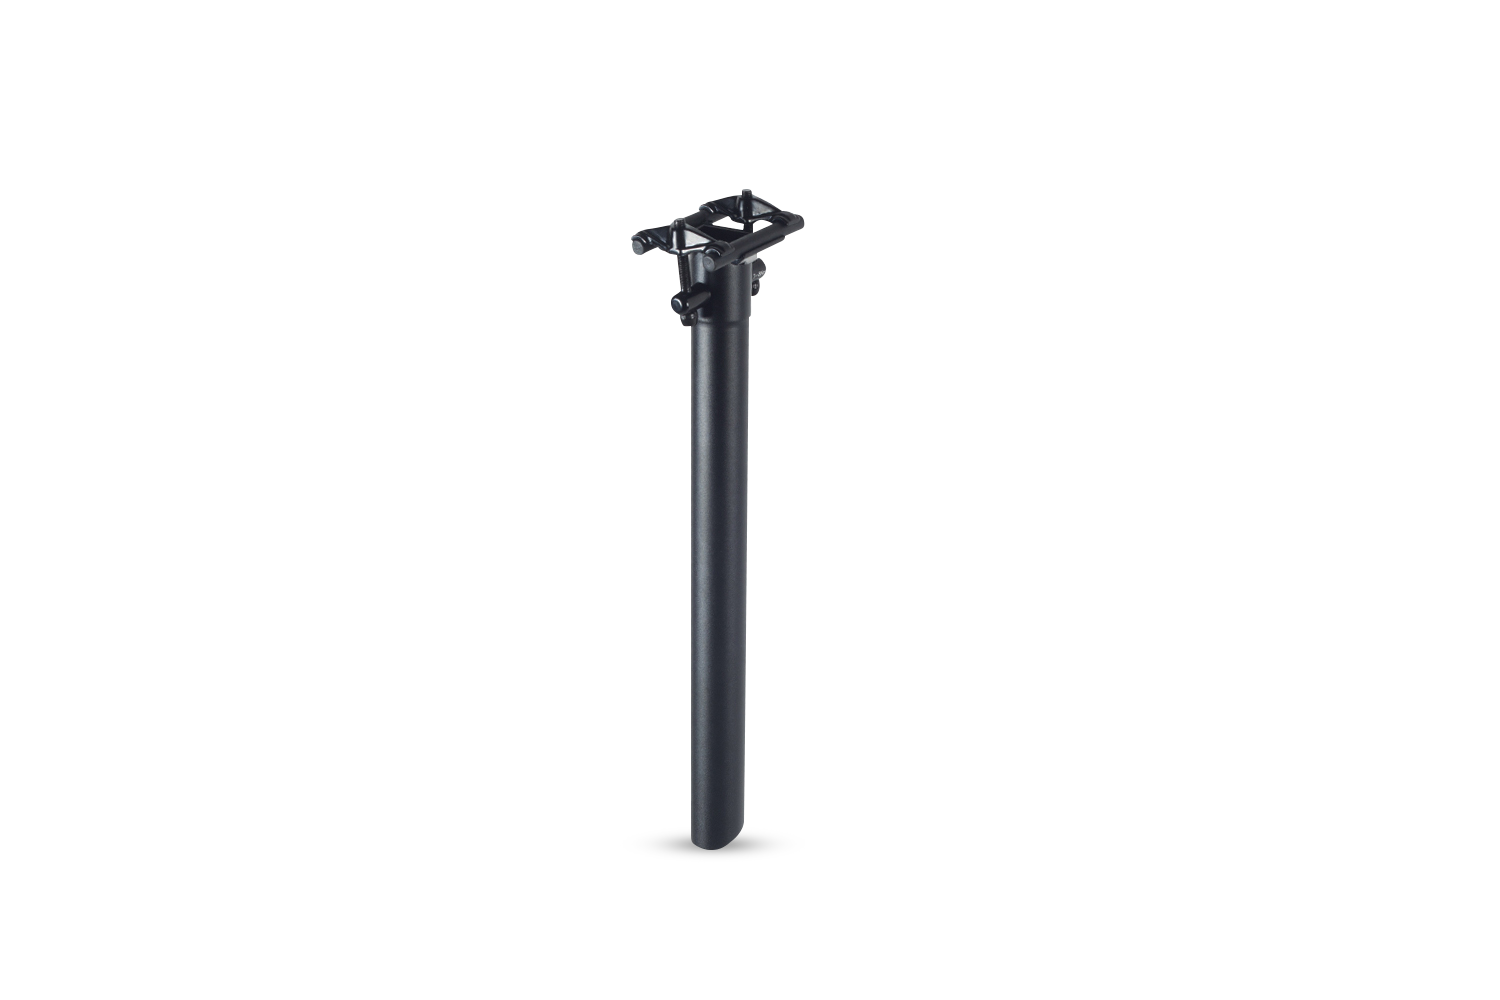 seatpost-8bar-giga-black